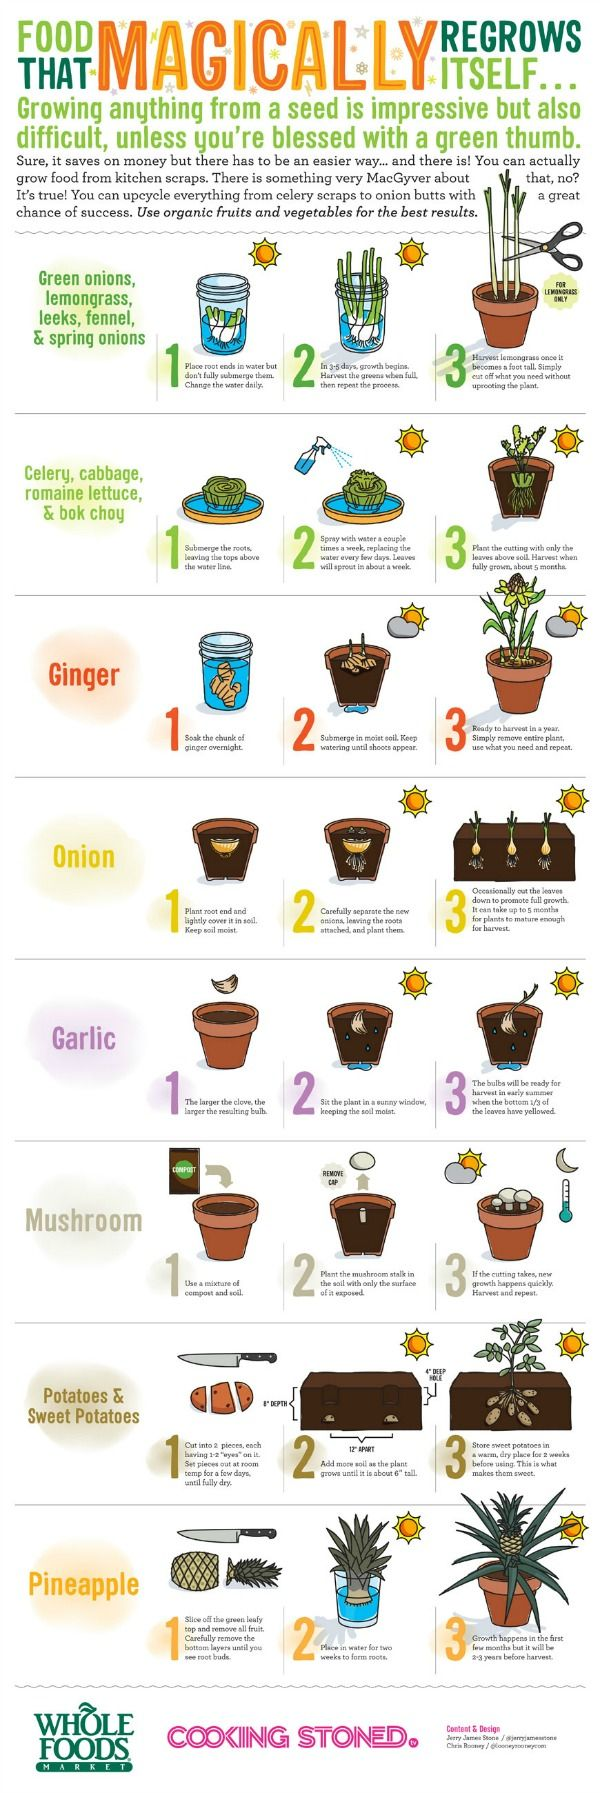 Here are the Foods that You Can Magically Regrow from Leftovers |Foodbeast